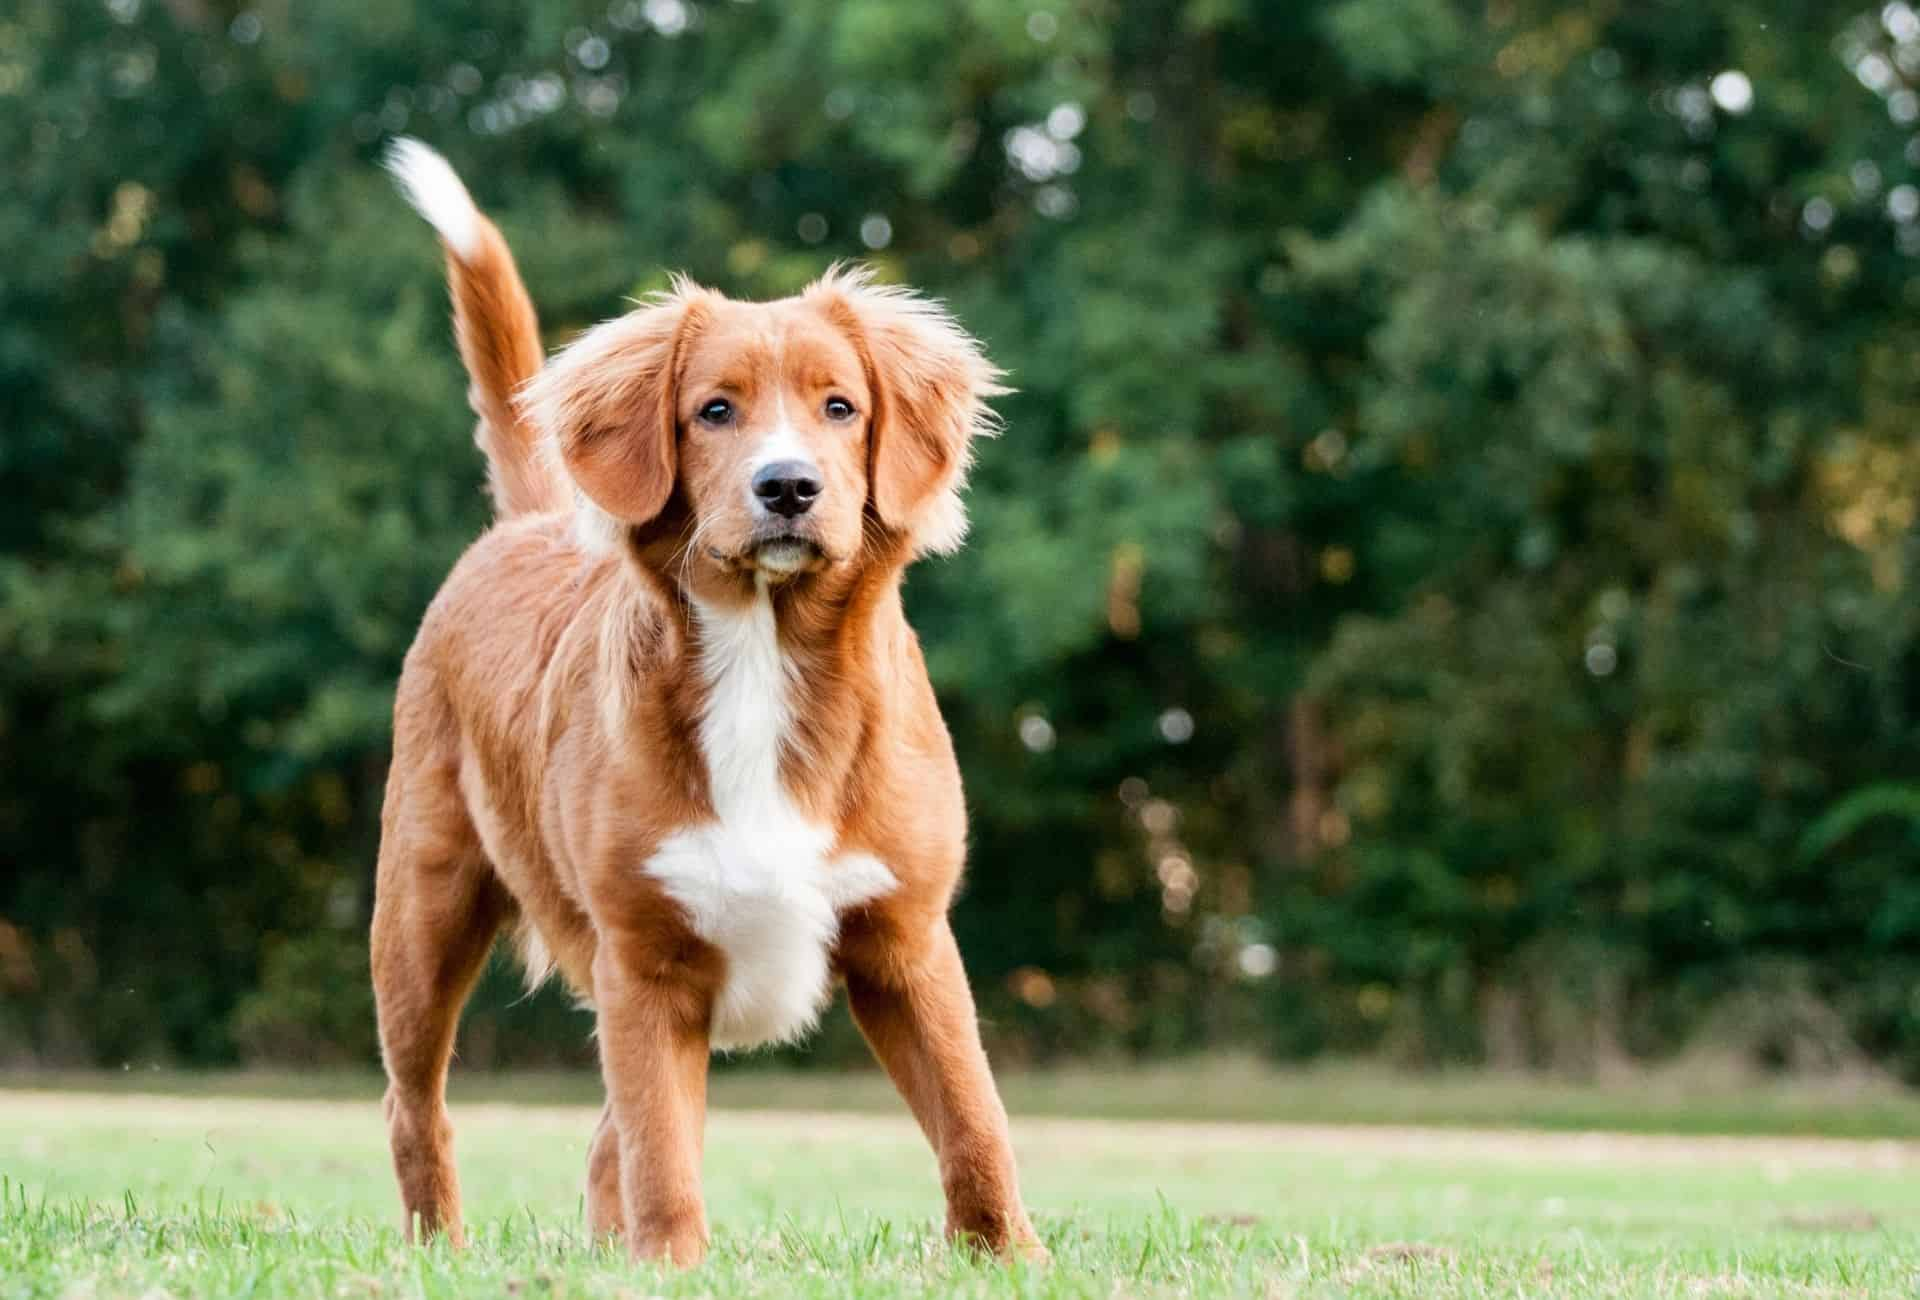 Super cute Nova Scotia Duck Tolling Retriever might be a good fit for shy children.